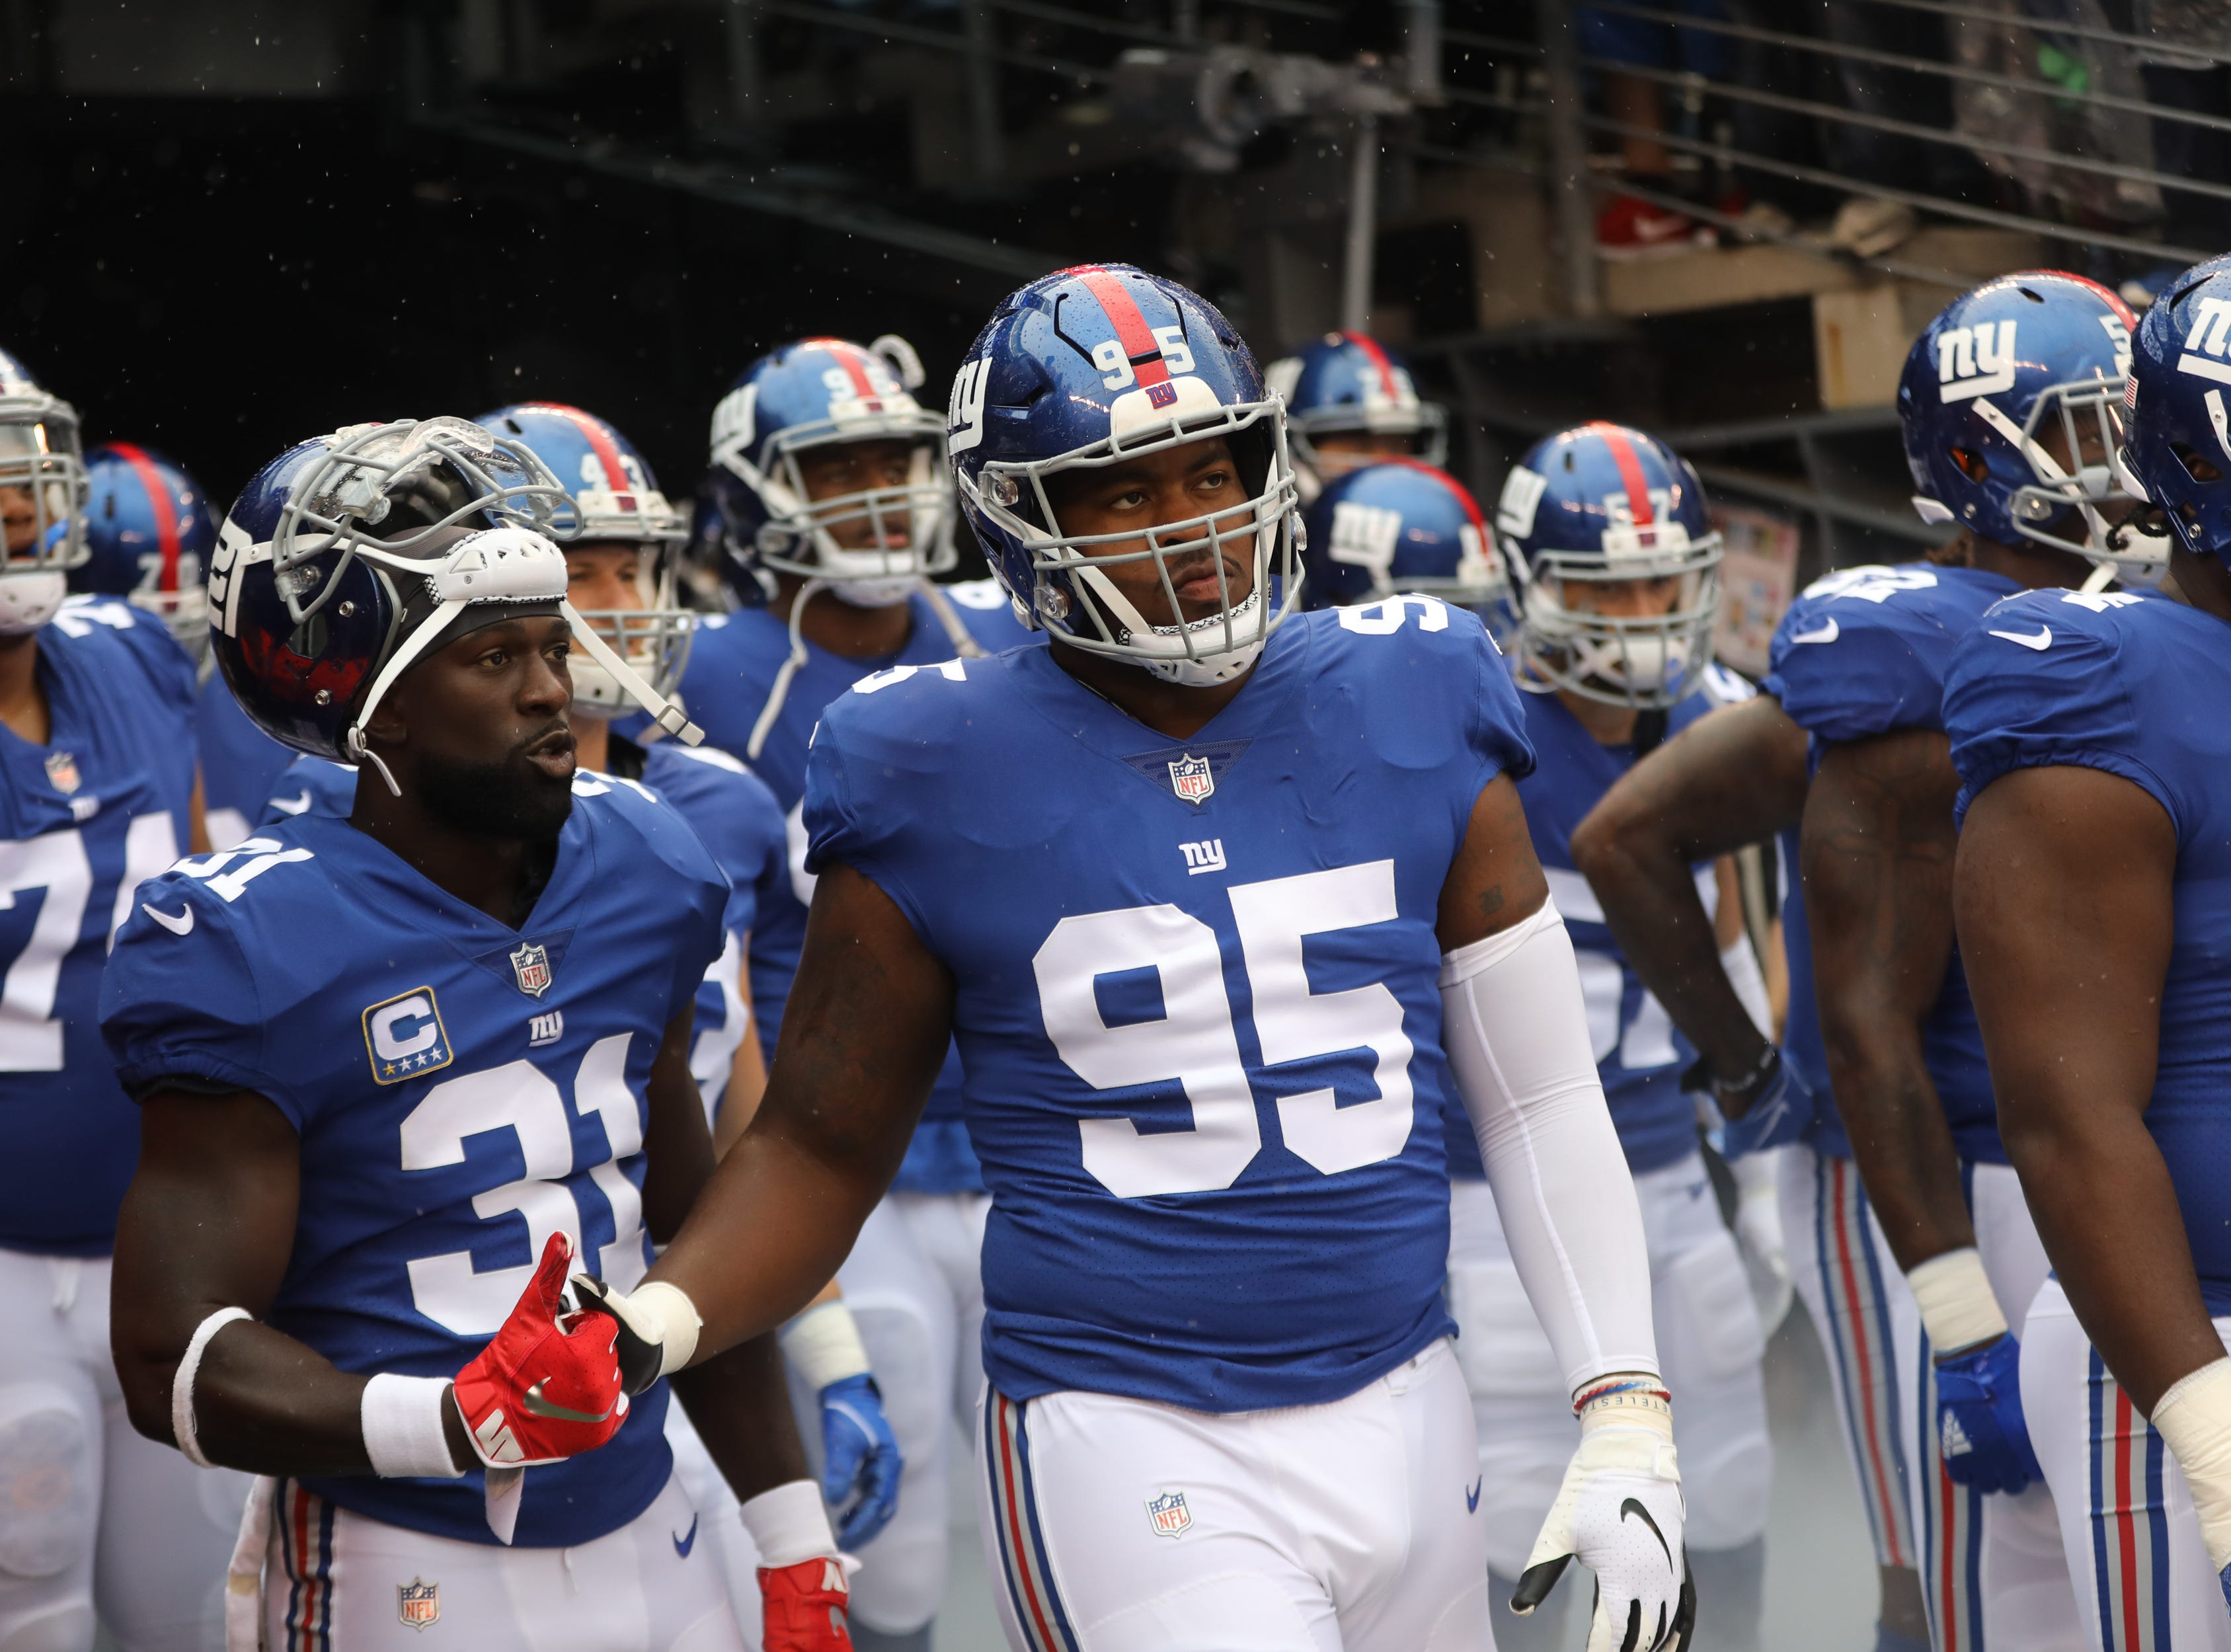 Michael Thomas (31), B.J. Hill (95) and the rest of the Giants get ready to take the field against the Jaguars in East Rutherford. Sunday, September 9, 2018